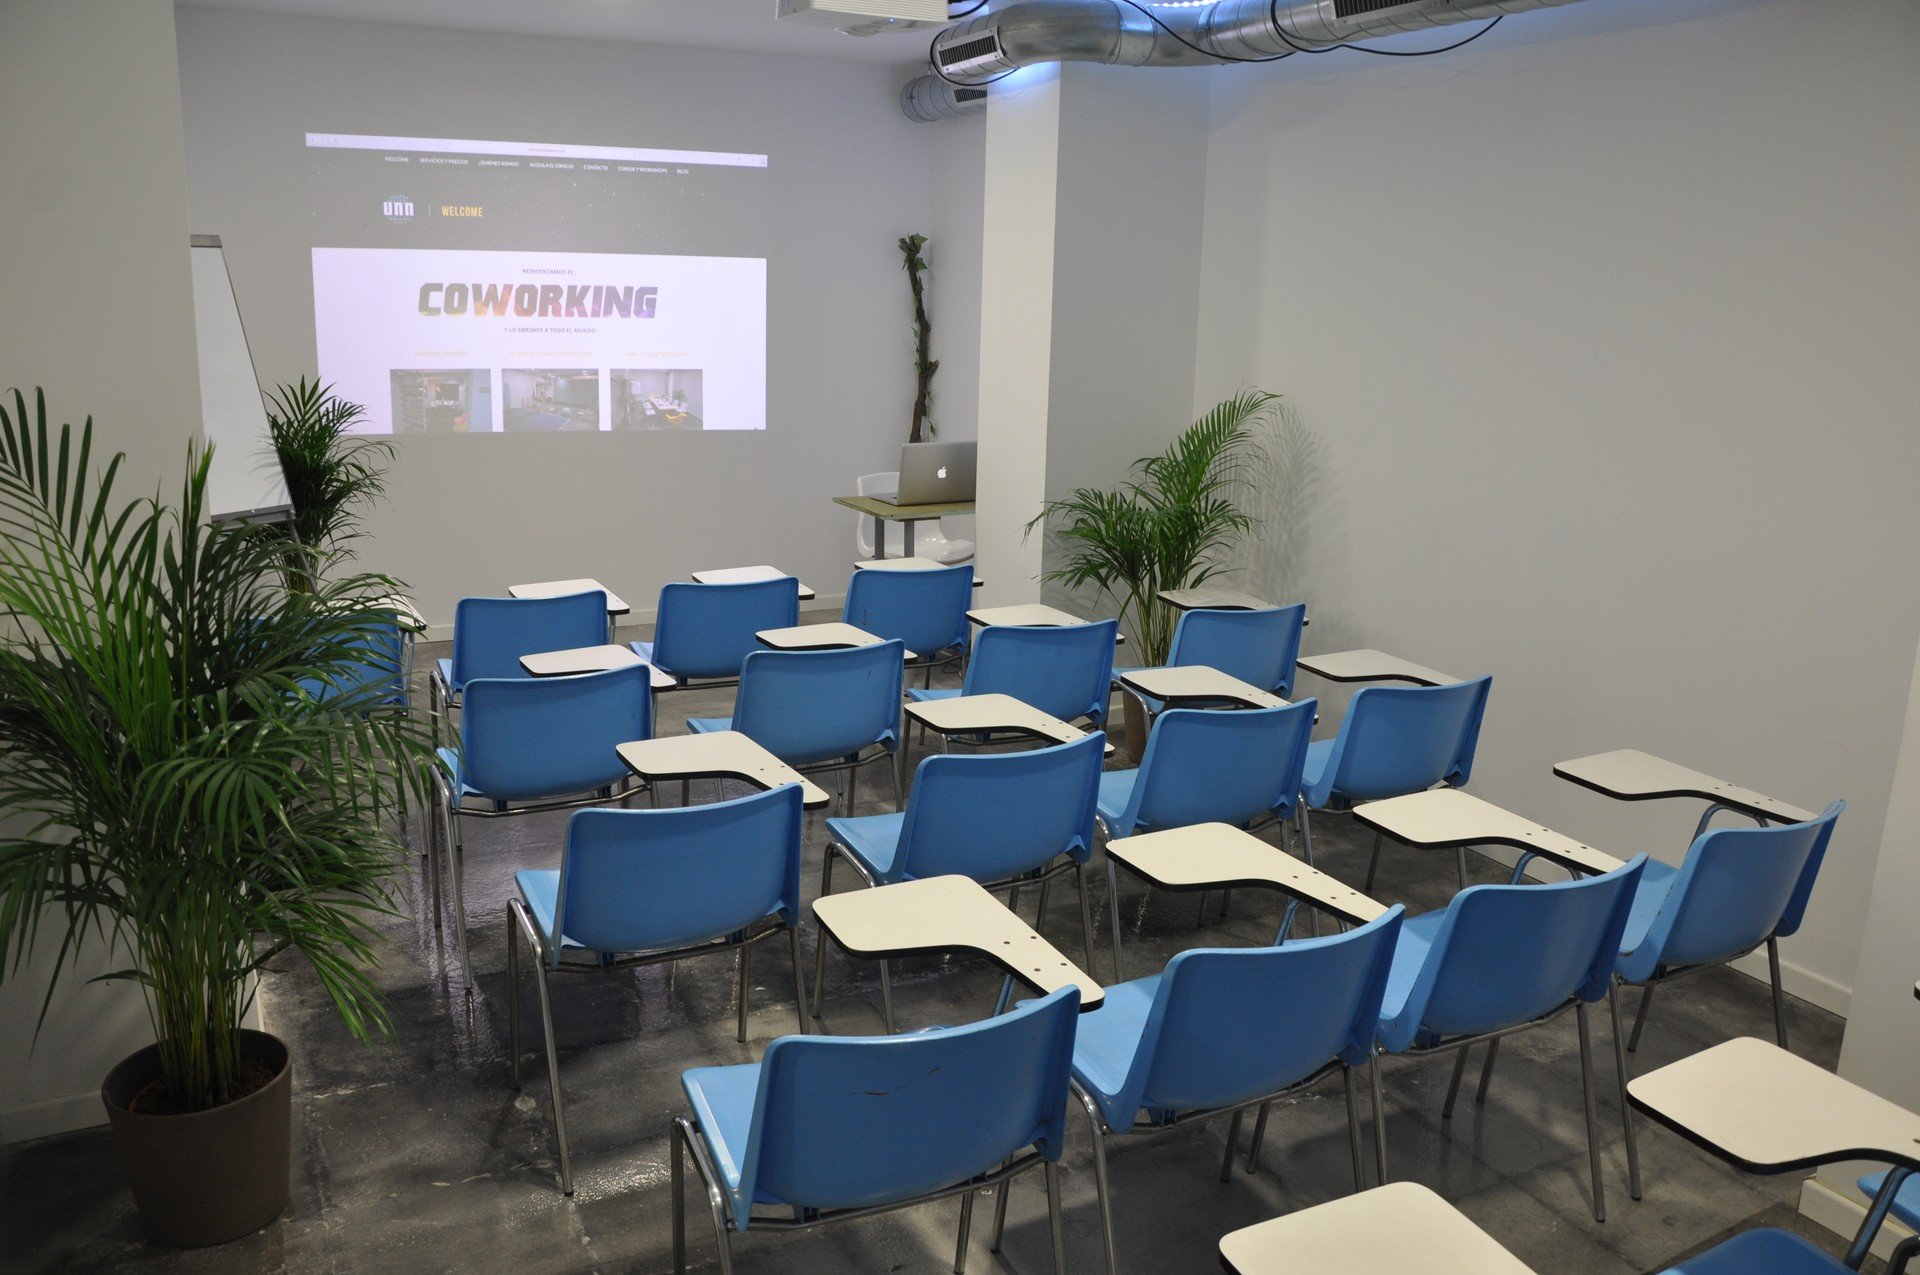 Barcelone conference rooms Espace de Coworking Unnatural Space - Meeting Room image 1